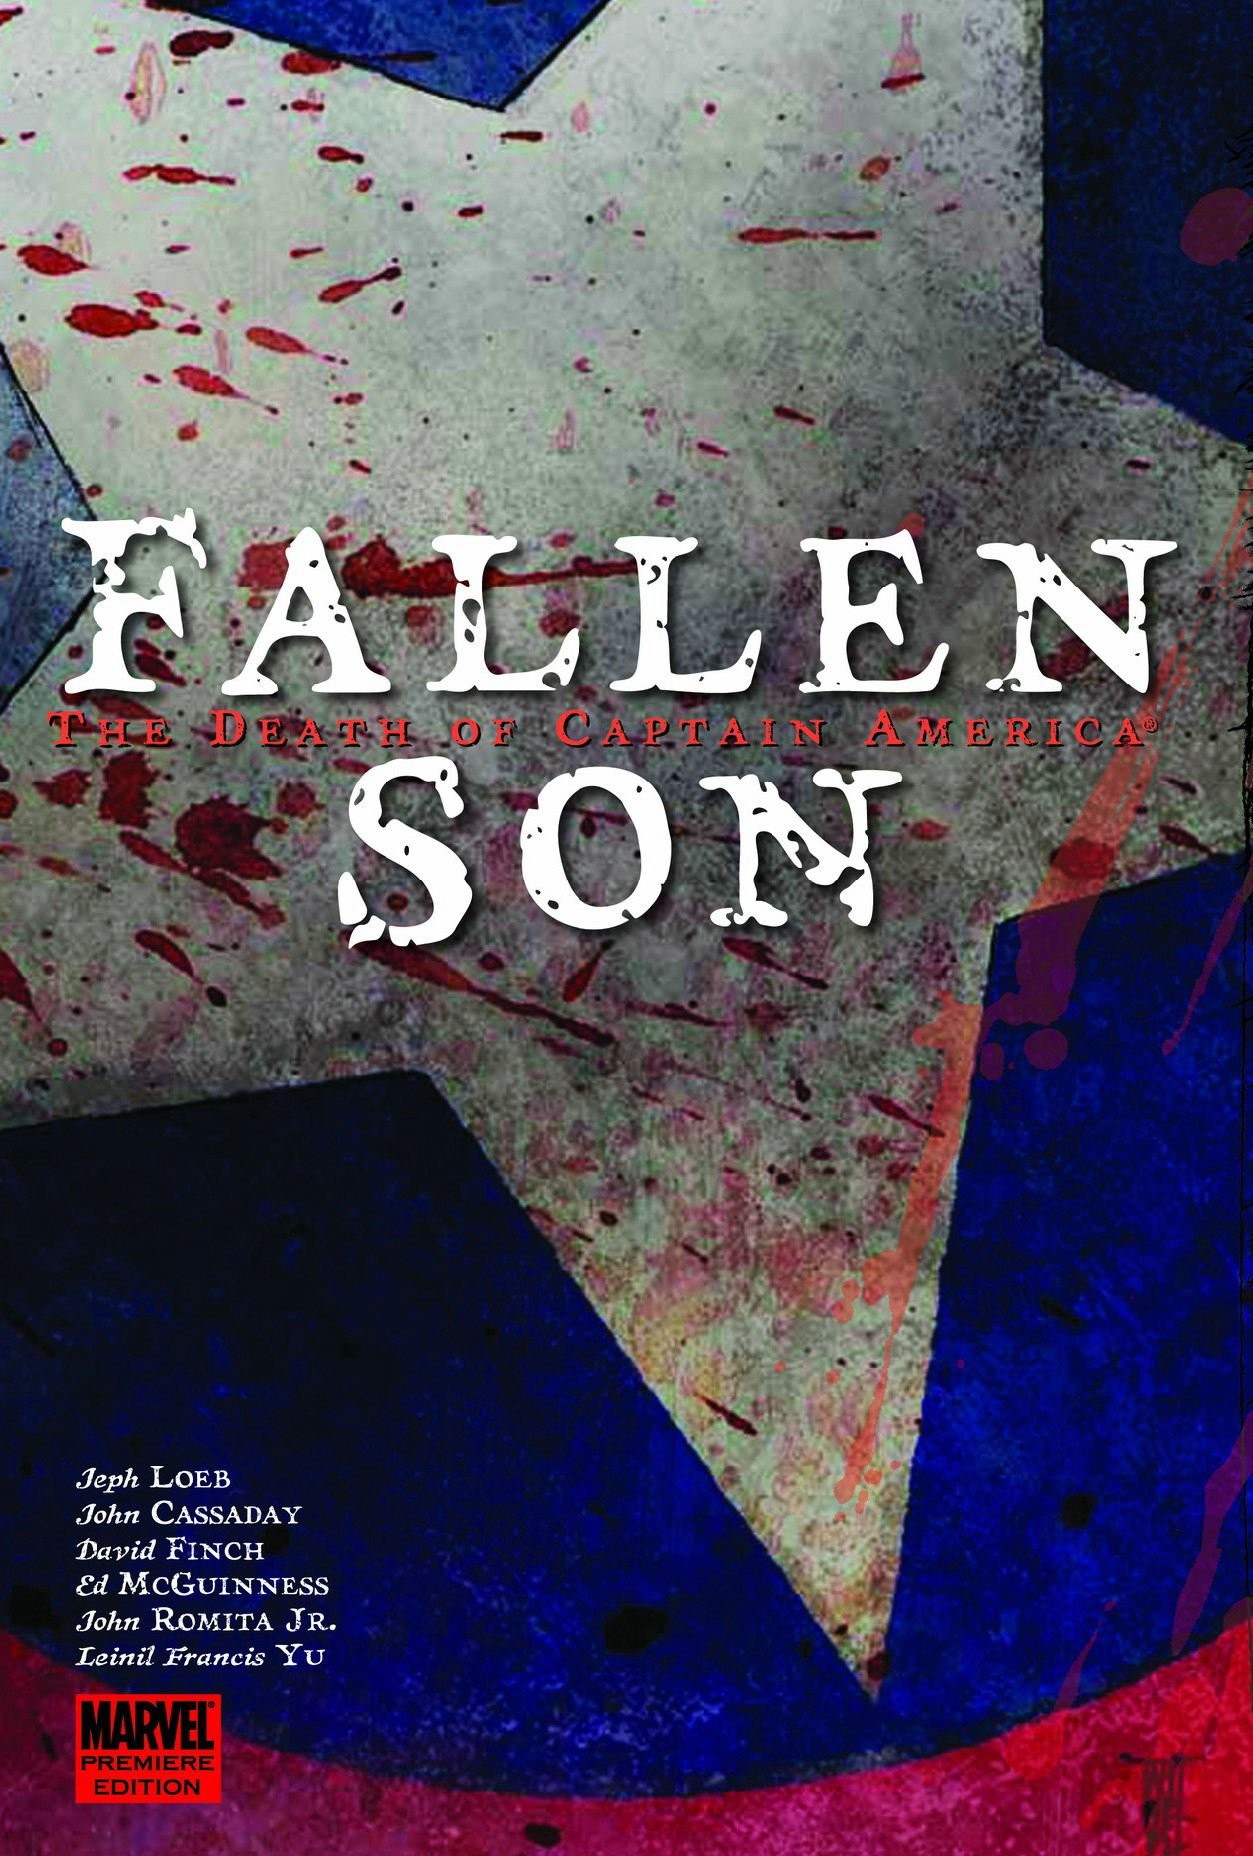 Amazon.com: Fallen Son: The Death of Captain America (0000785127992): Jeph Loeb, Ed Brubaker, Steve Epting, Leinil Francis Yu, Ed McGuiness, John Romita Jr. ...